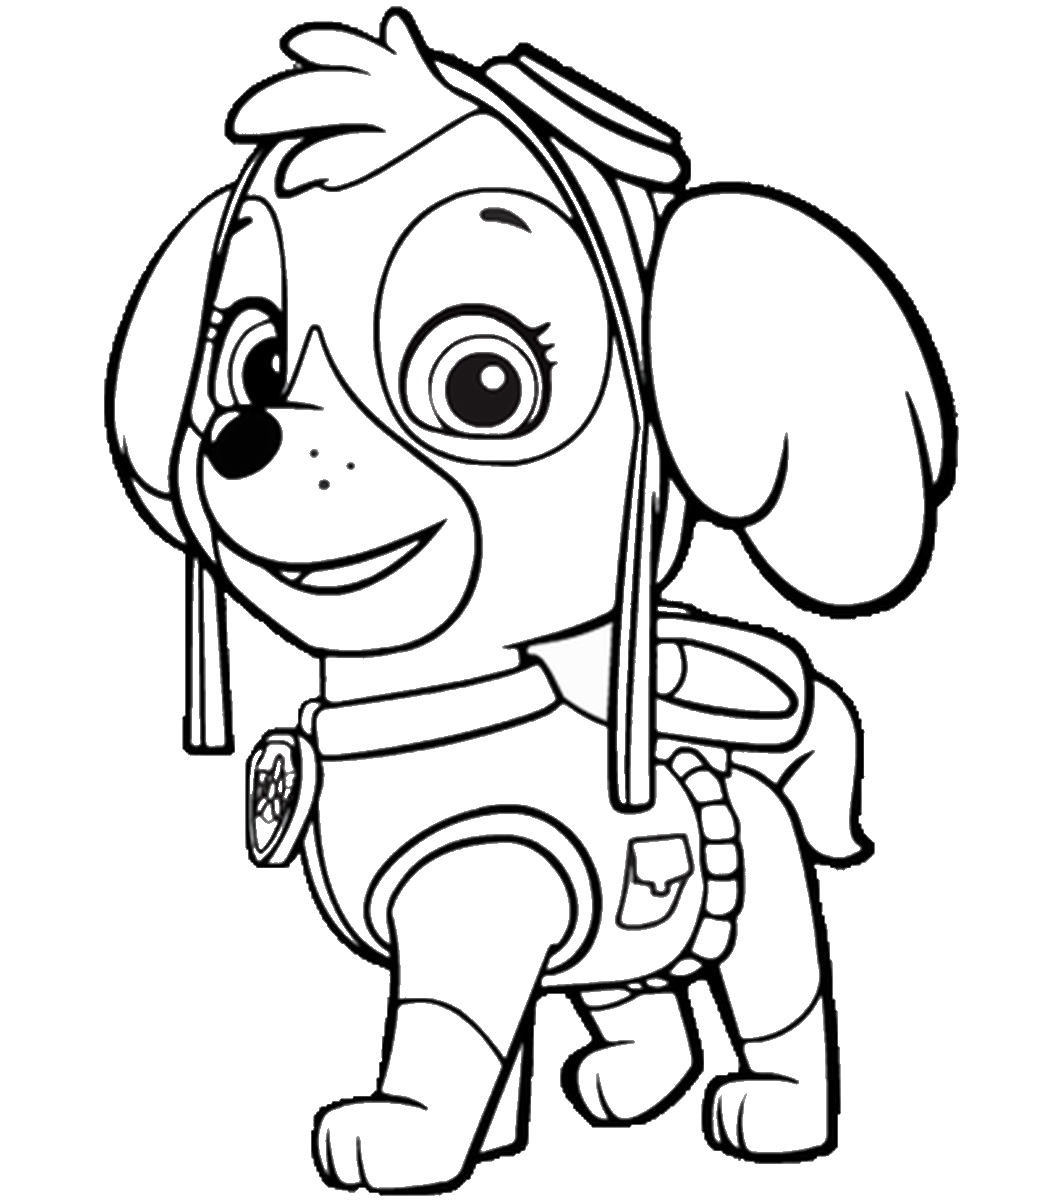 coloring images paw patrol everest paw patrol coloring lesson kids coloring page patrol coloring paw images